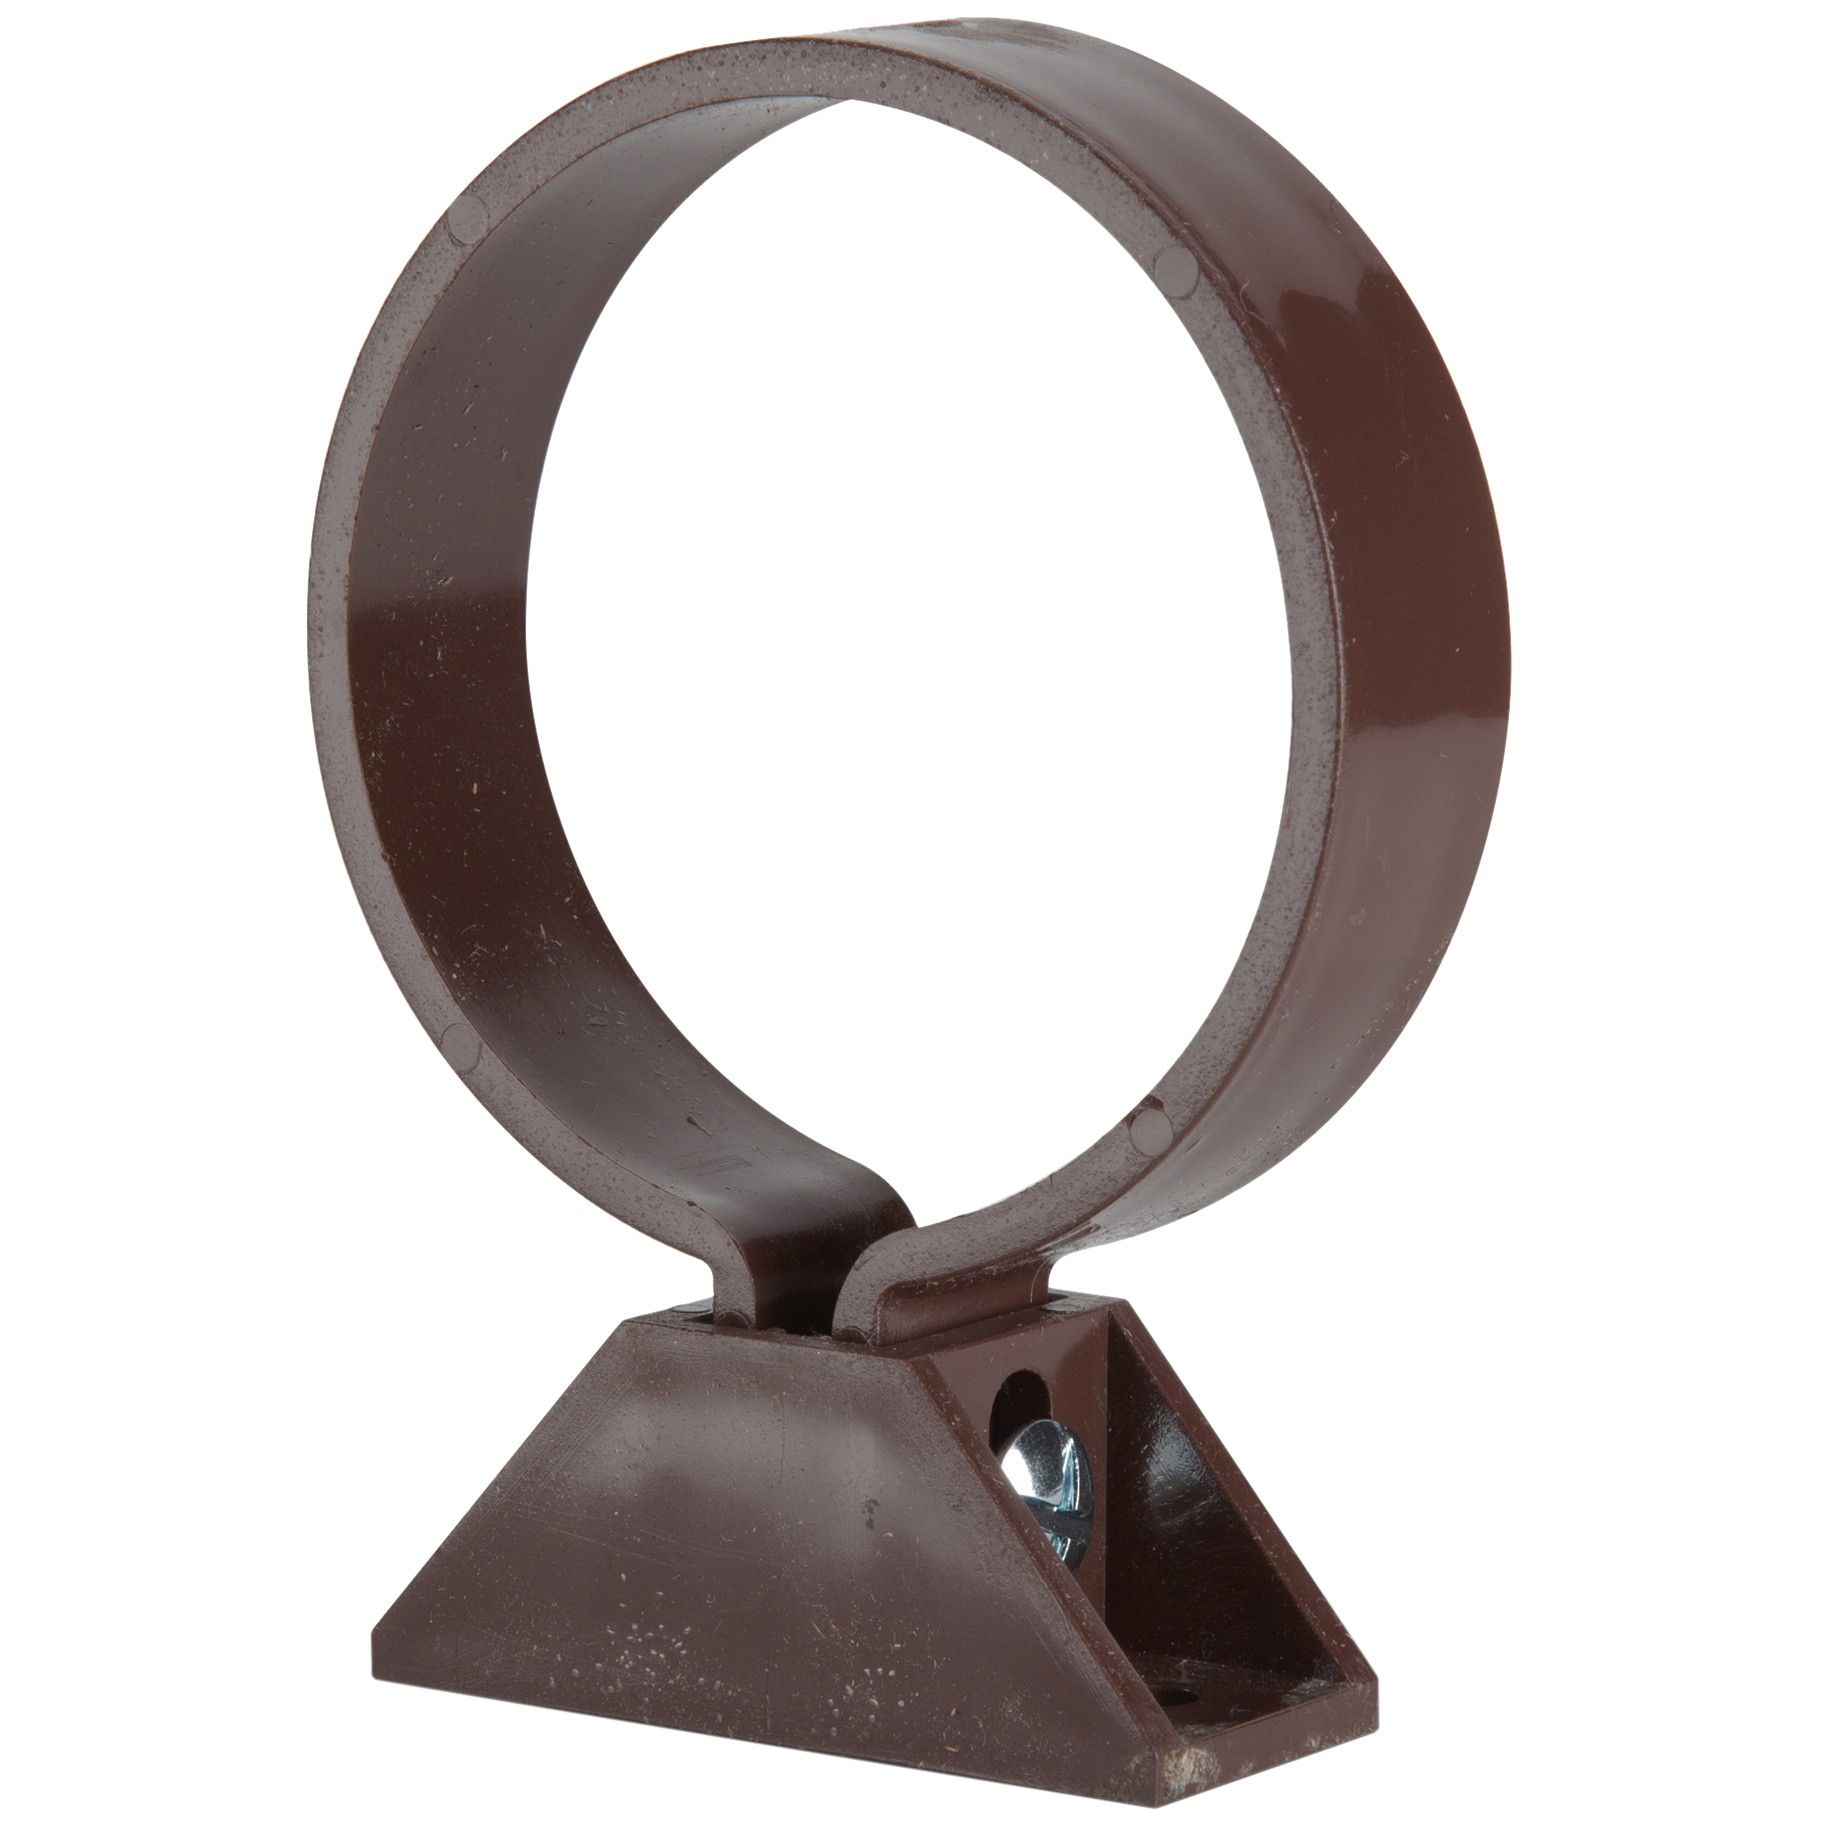 Polypipe 68mm Round Down Pipe Clip (with Nut, Bolt and Back Plate) - Brown